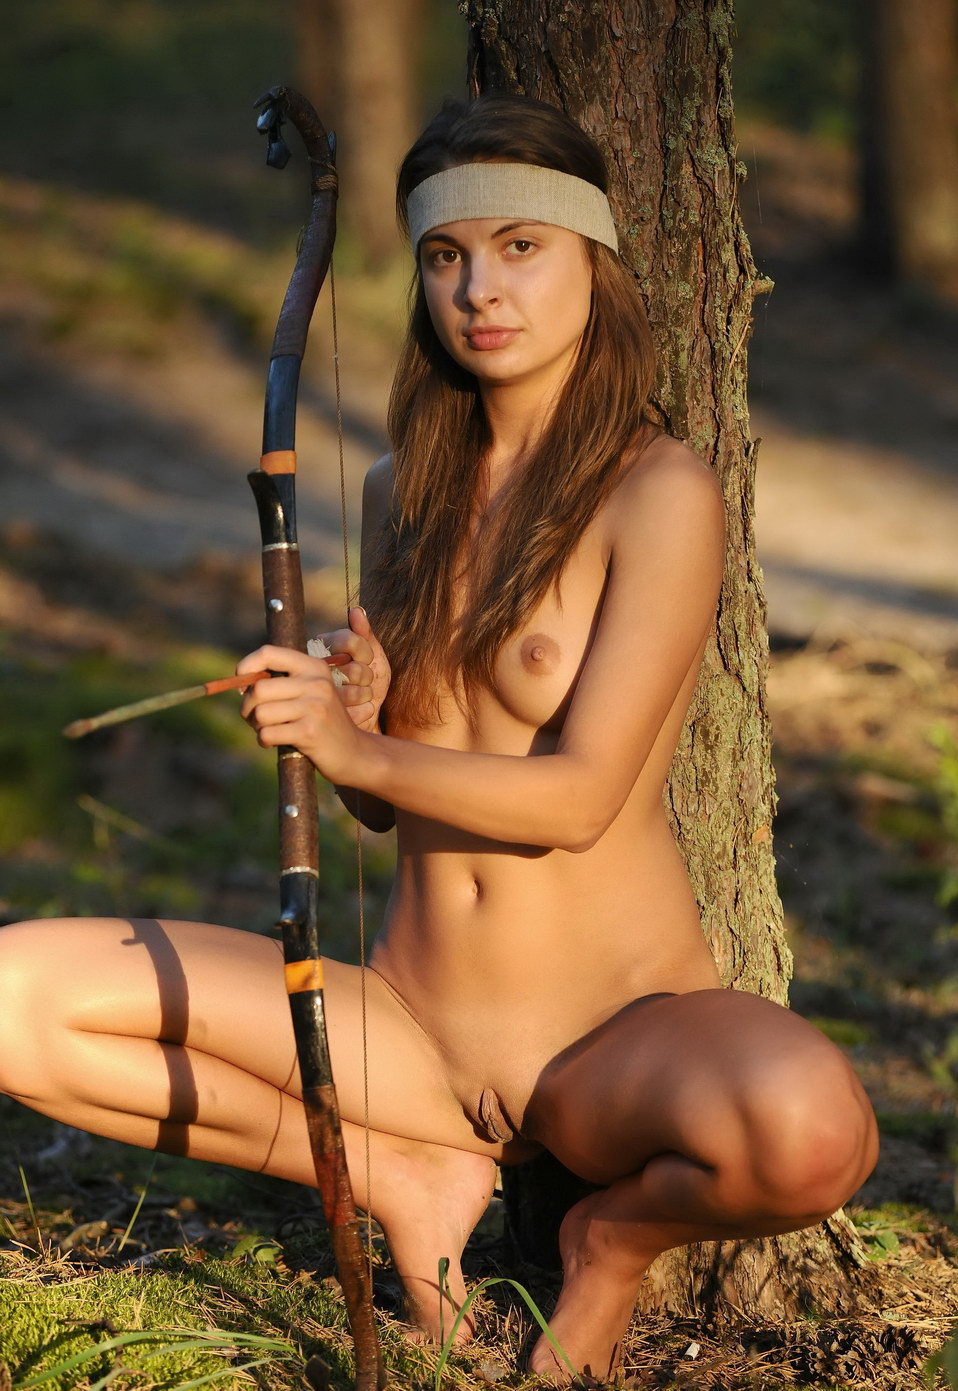 Sexy nude female archers not present